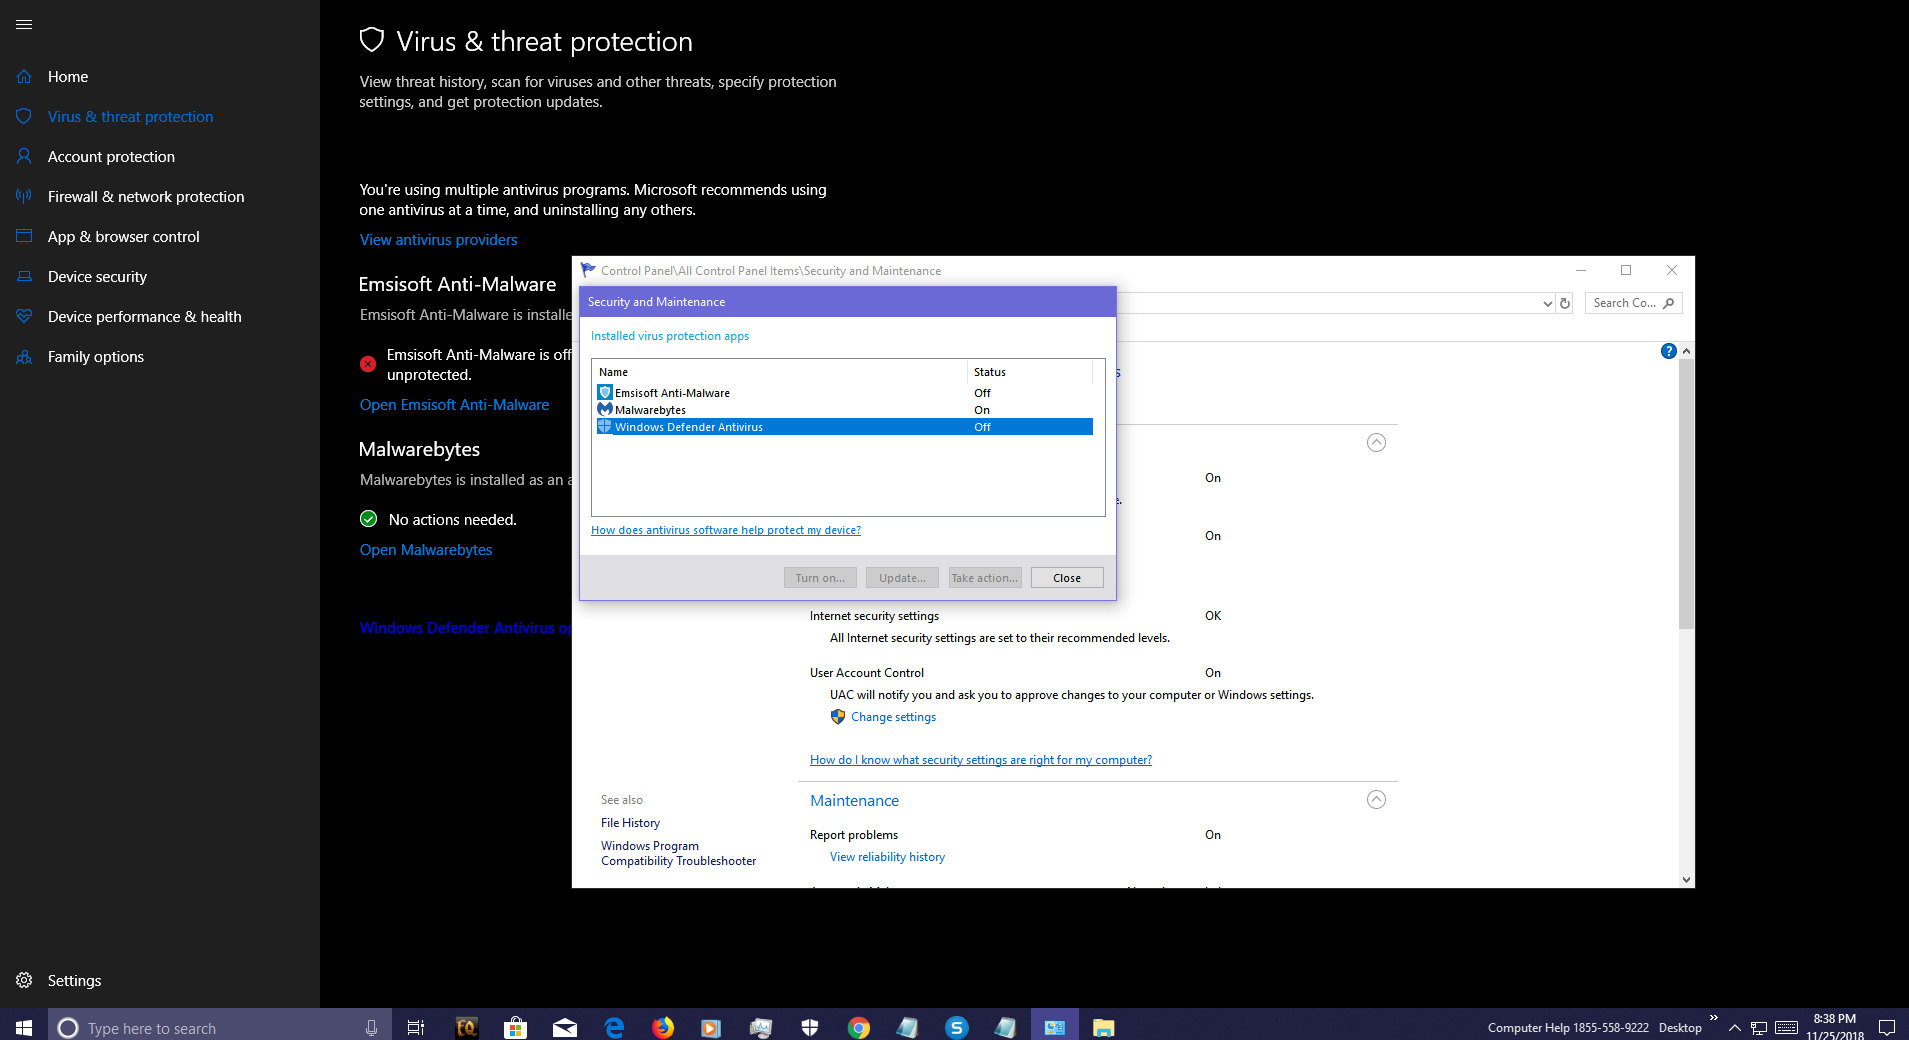 I know I have a virus, not sure how to proceed - Resolved Malware